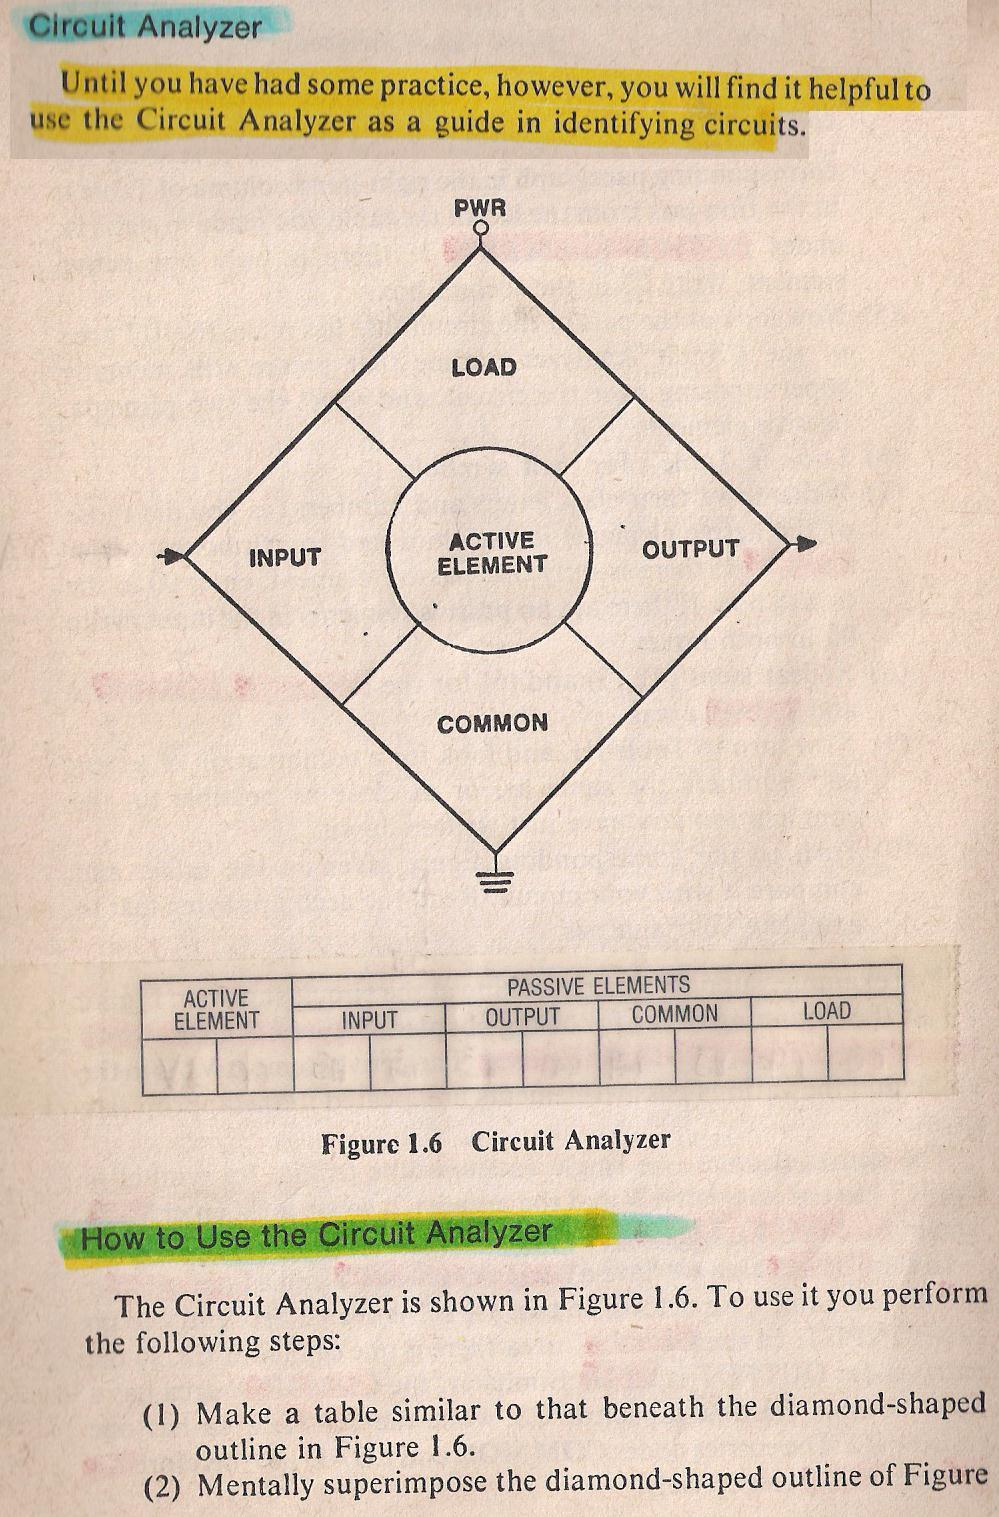 Reading And Analyzing Schematic Diagrams Diagram 001g By Larry E Gugle K4rfe